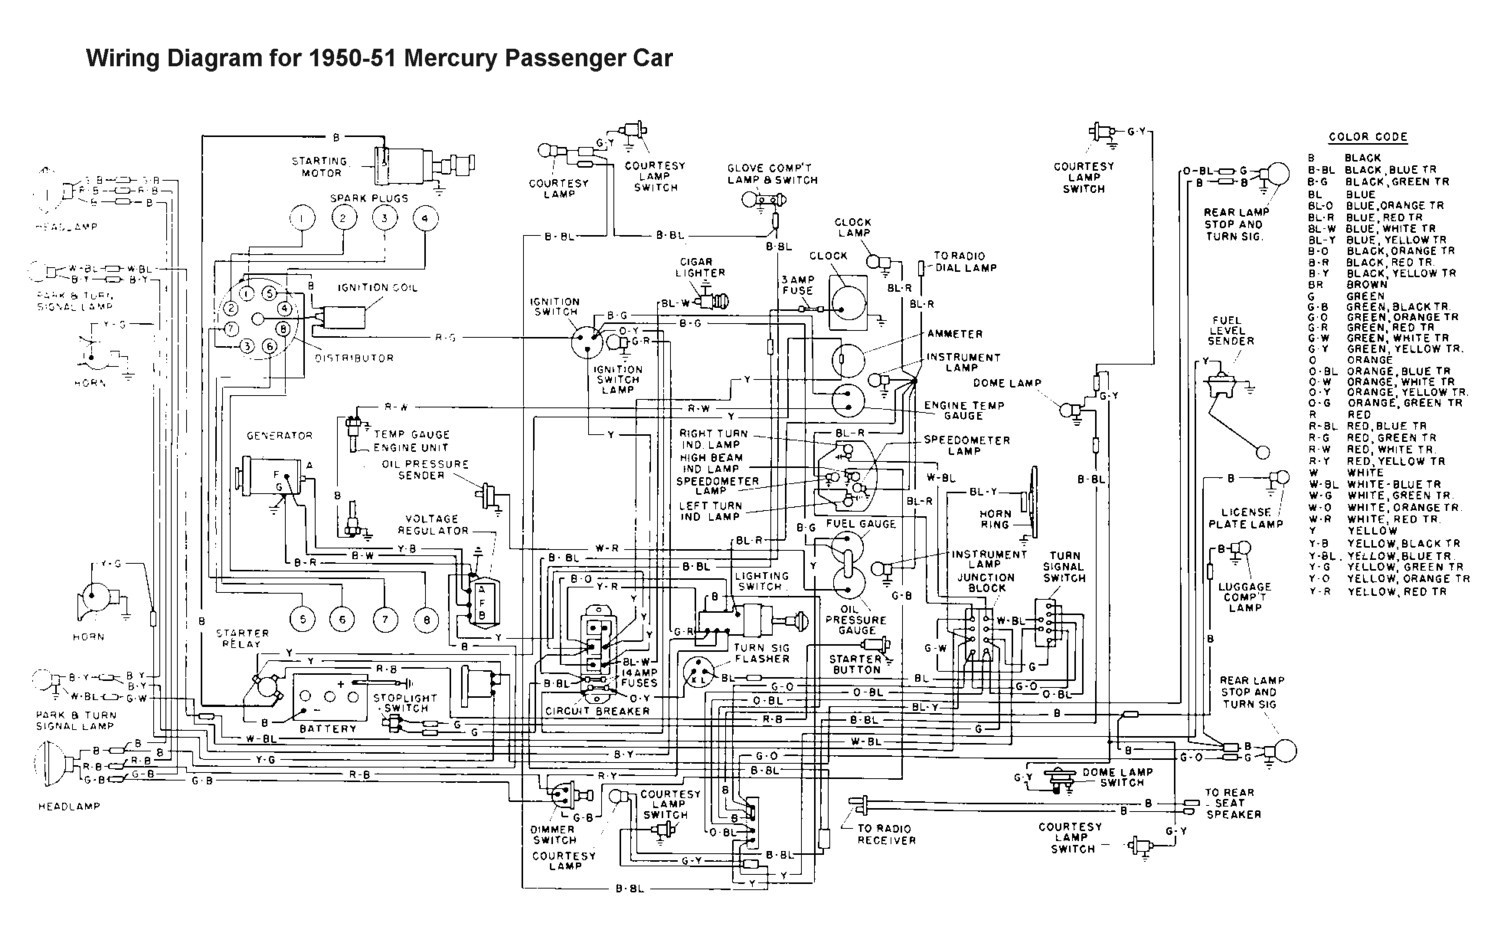 Flathead Electrical Wiring Diagrams Automotive Accessory Diagram For 1950 51 Mercury Car